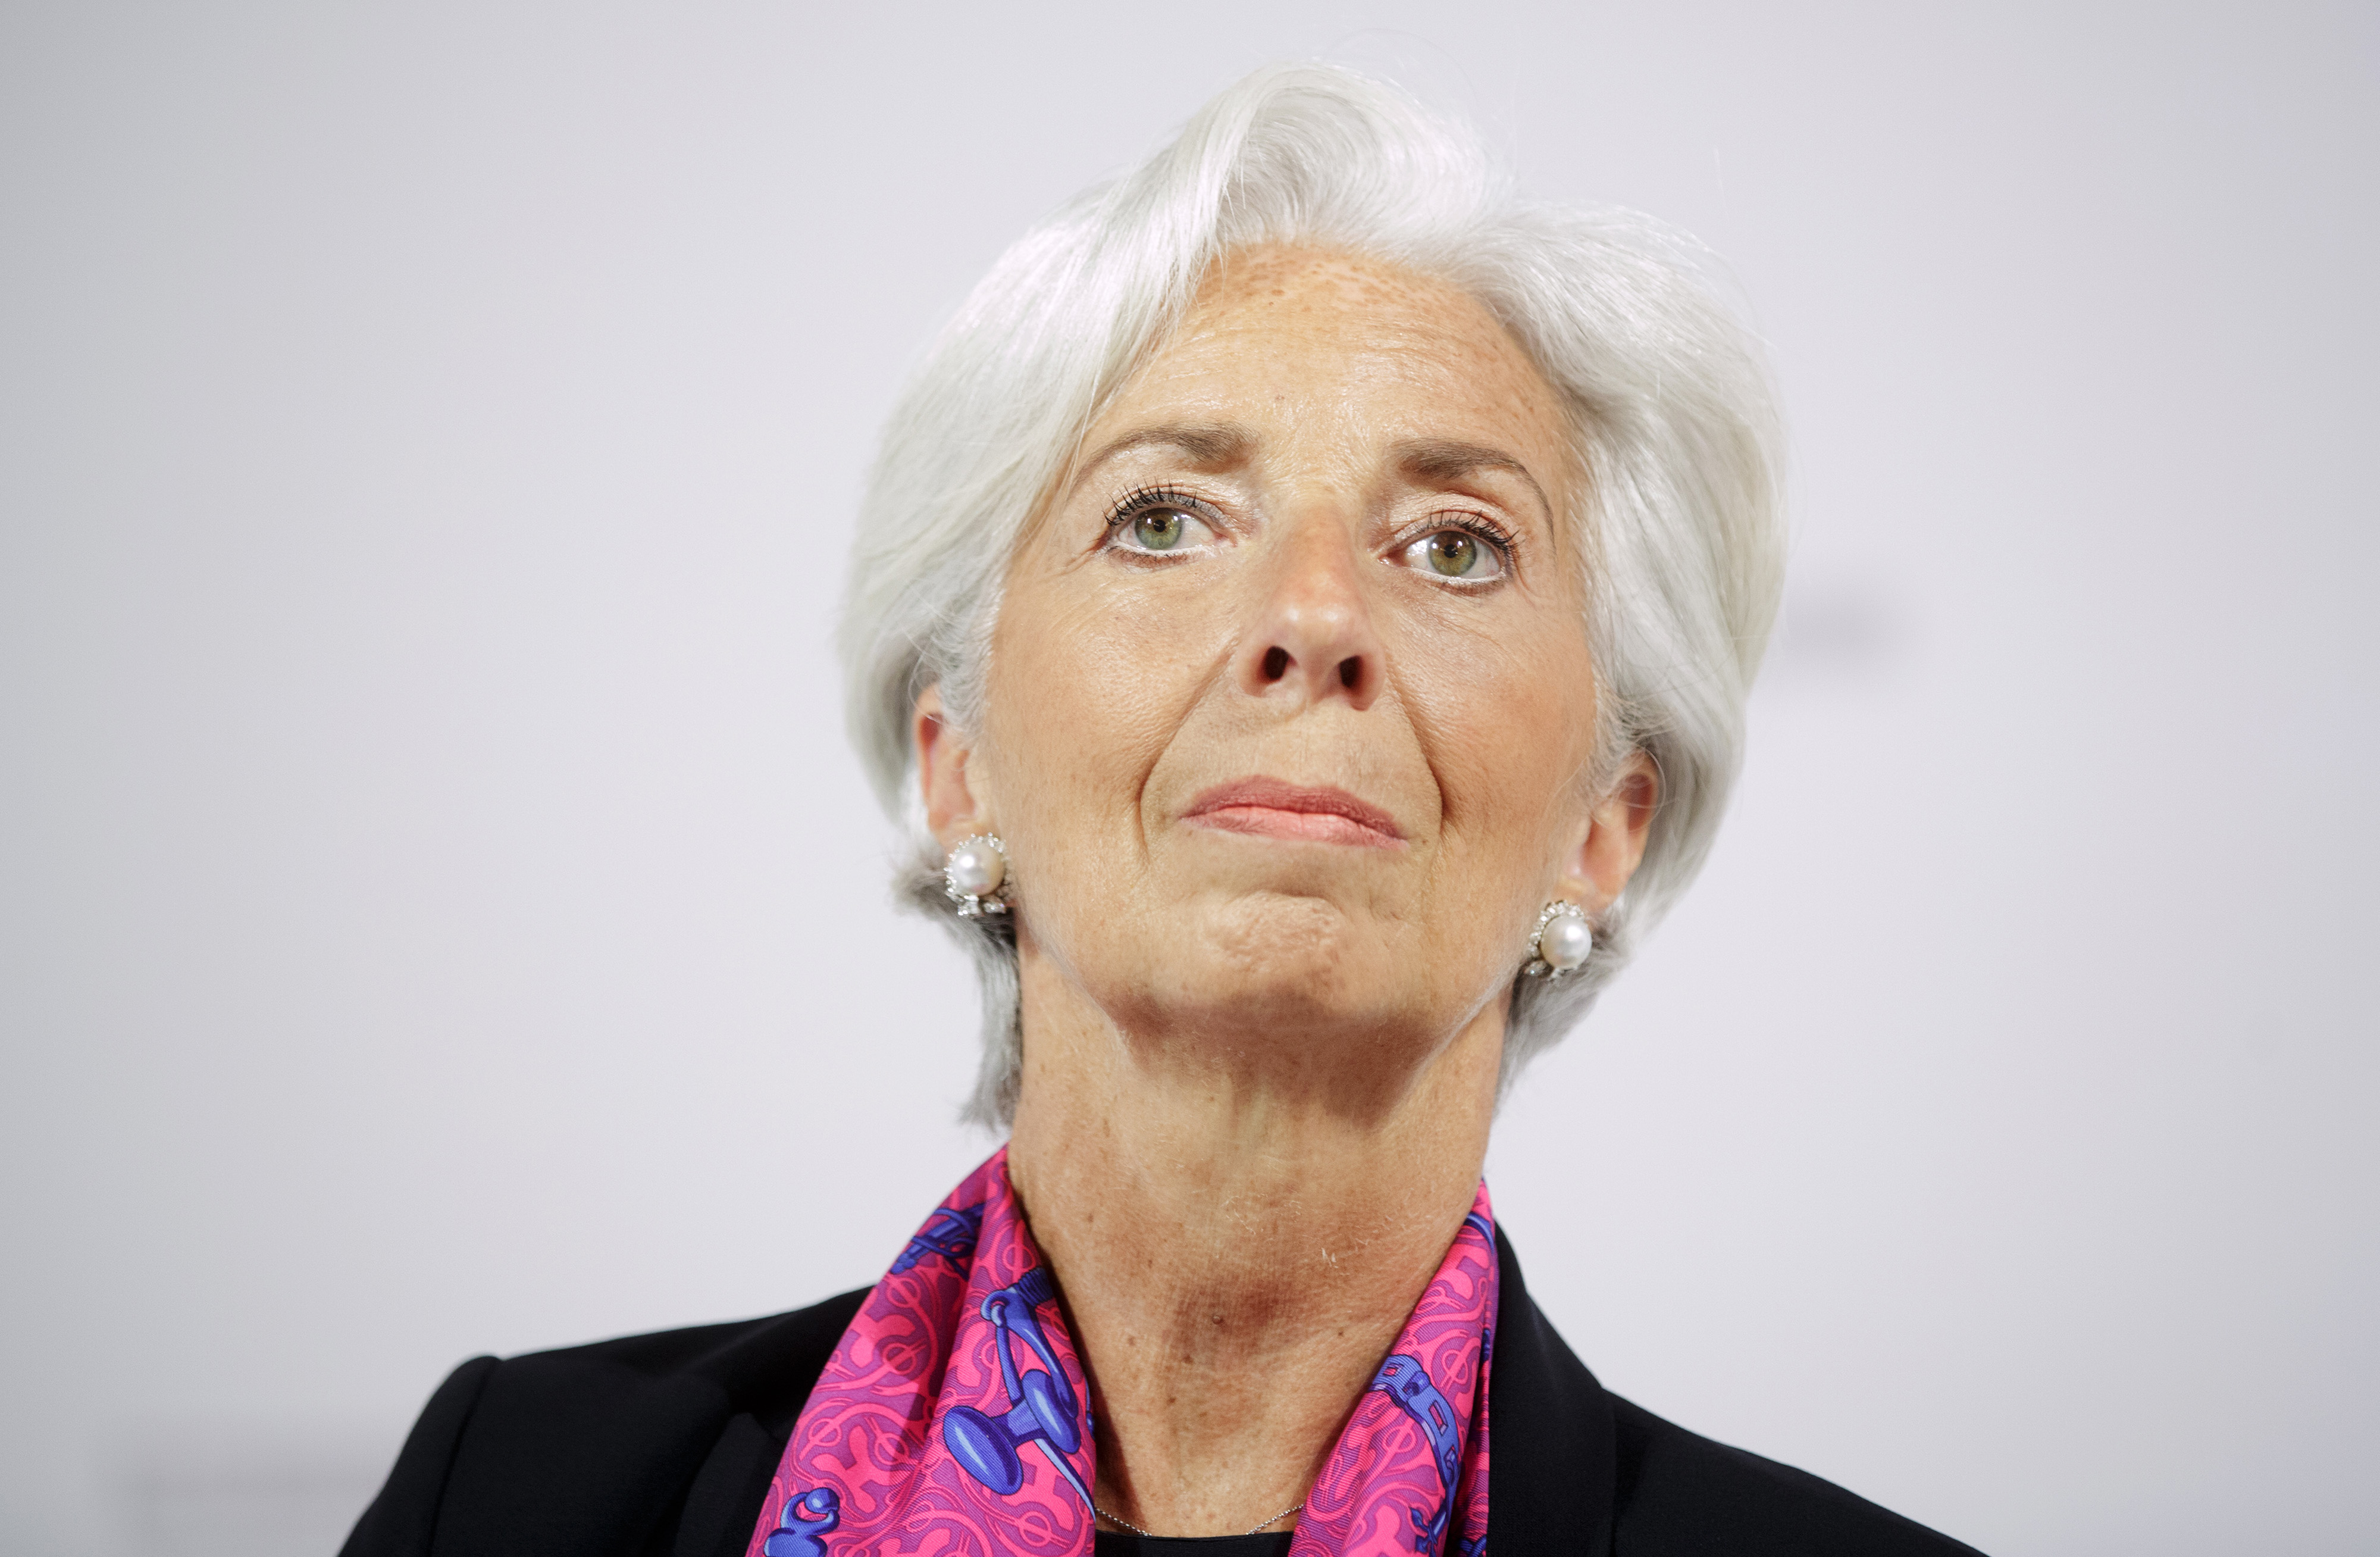 Christine Lagarde, managing director of the International Monetary Fund (IMF), looks on during a panel session at the Hofburg Palace in Vienna, Austria, on Friday, June 17, 2016.